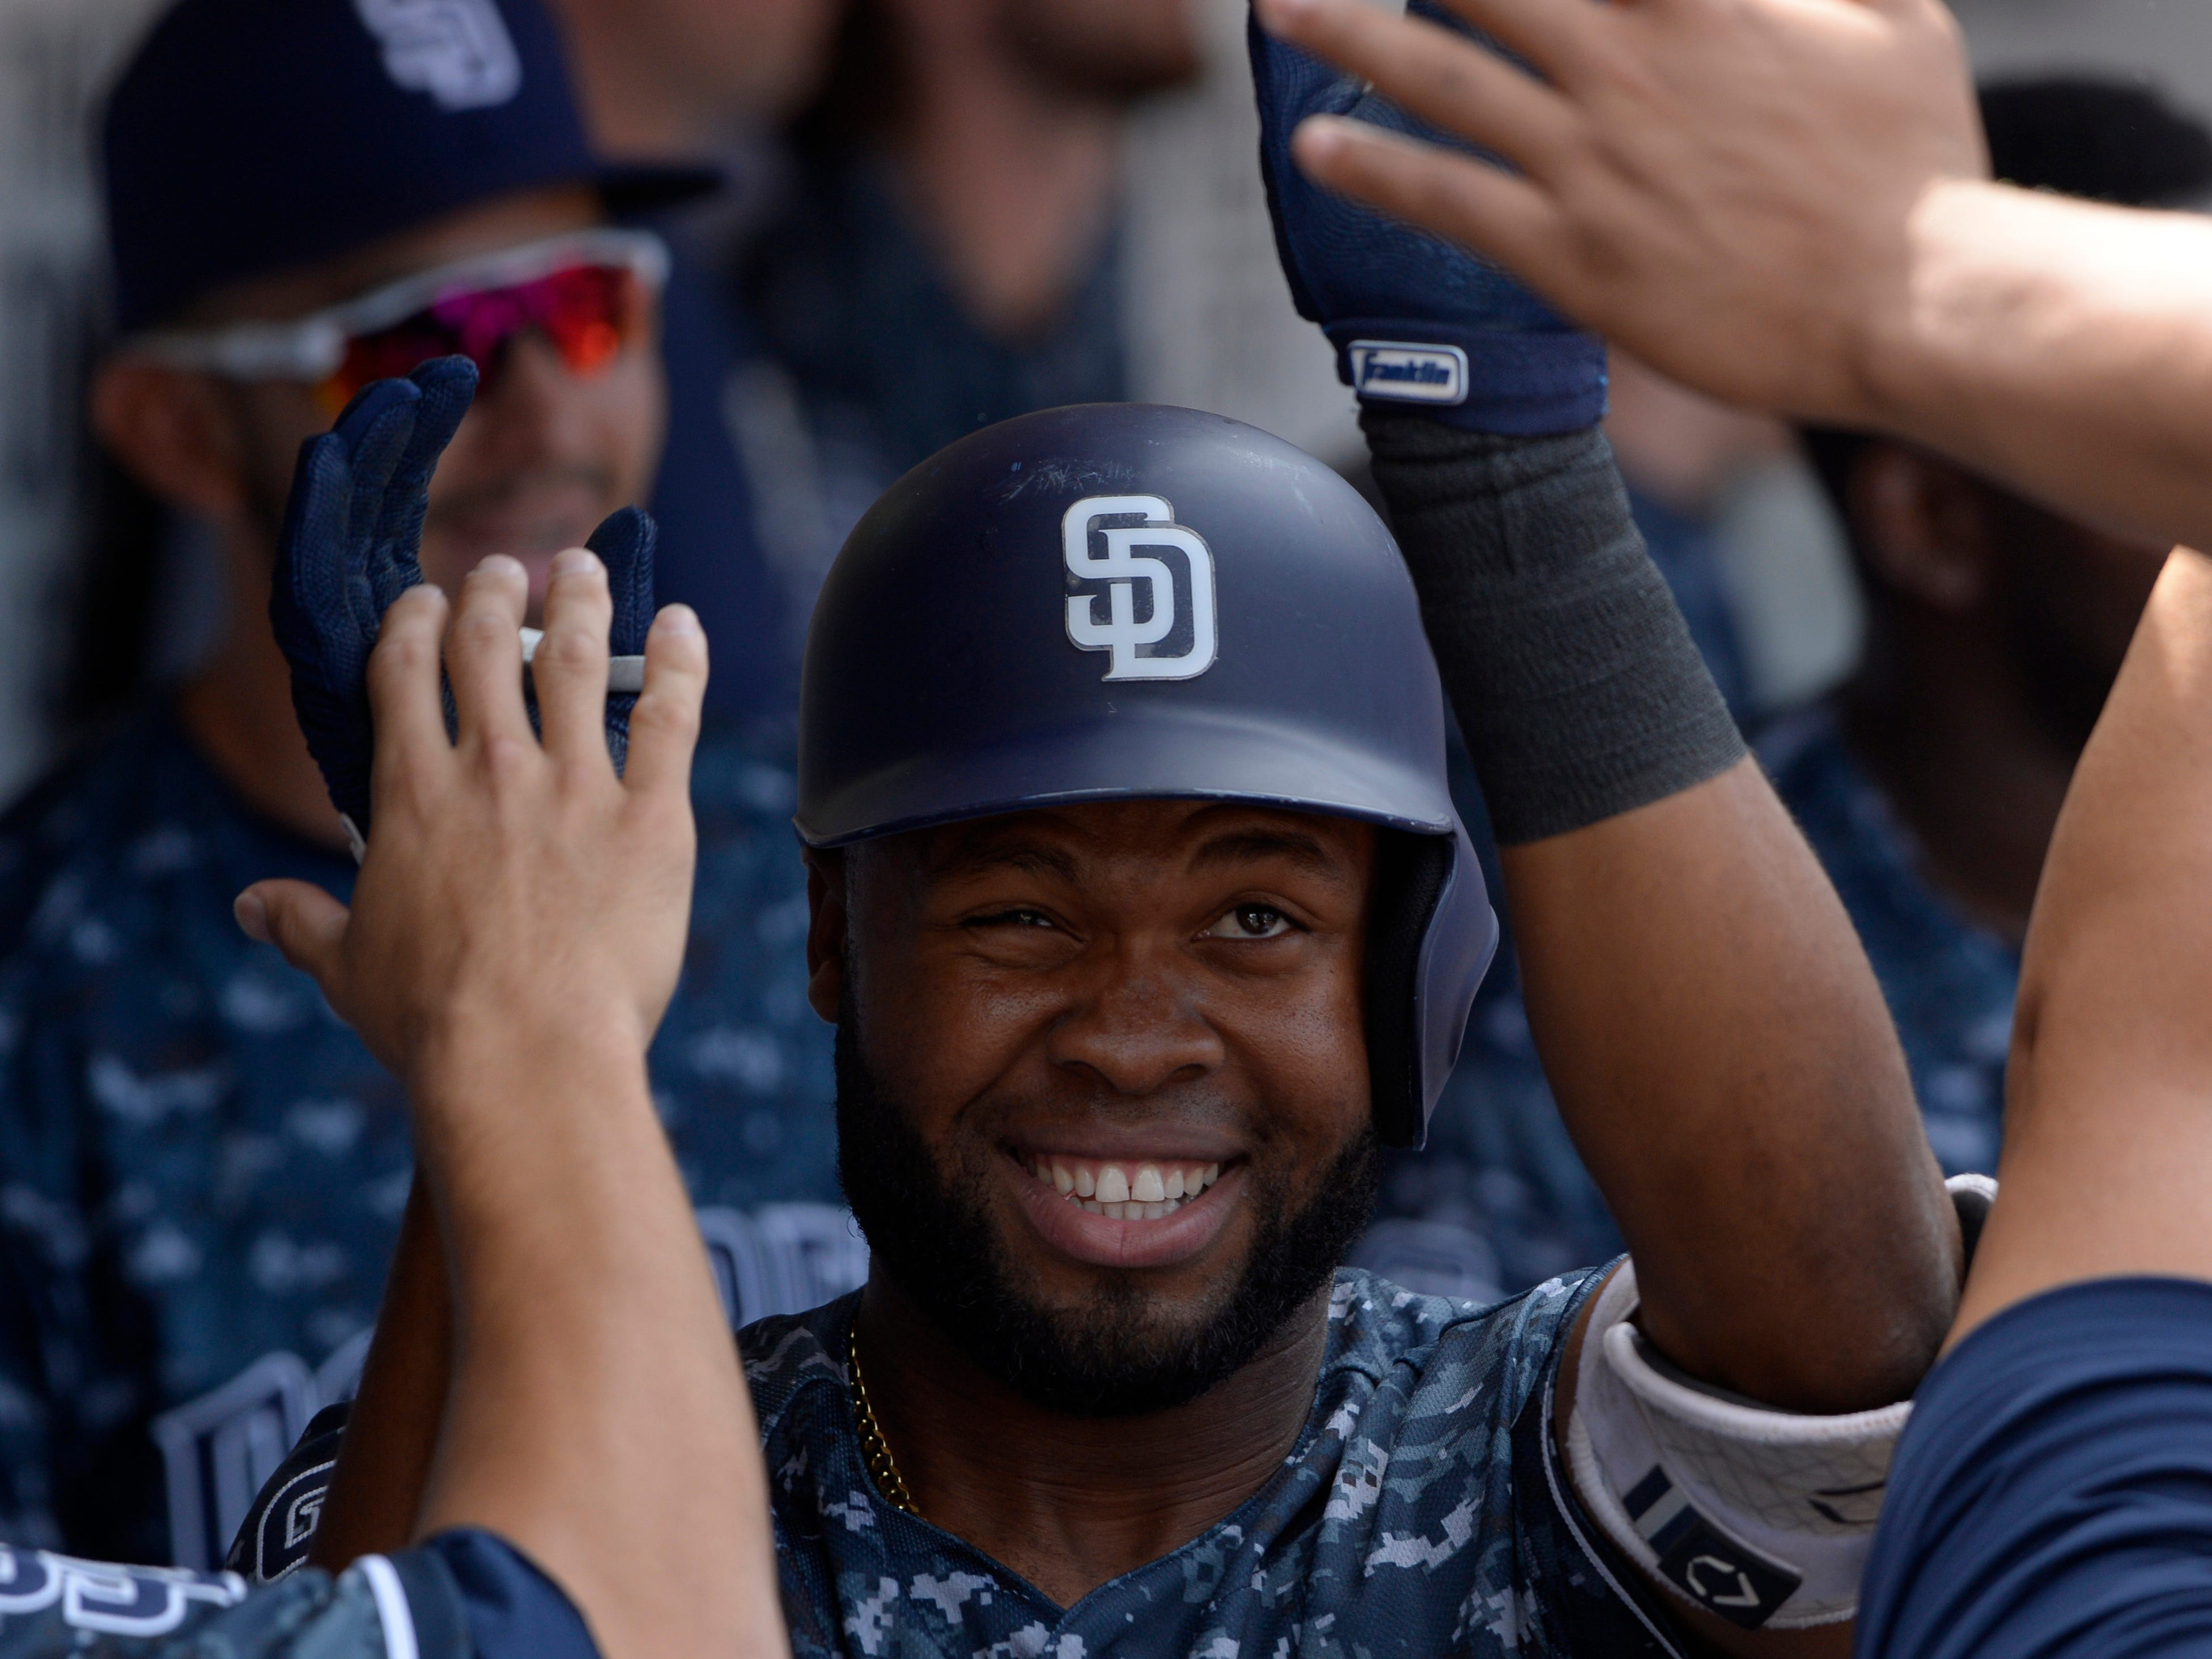 Sep 30, 2018; San Diego, CA, USA; San Diego Padres center fielder Manuel Margot (center) is congratulated after hitting a solo home run during the second inning against the Arizona Diamondbacks at Petco Park. Mandatory Credit: Jake Roth-USA TODAY Sports